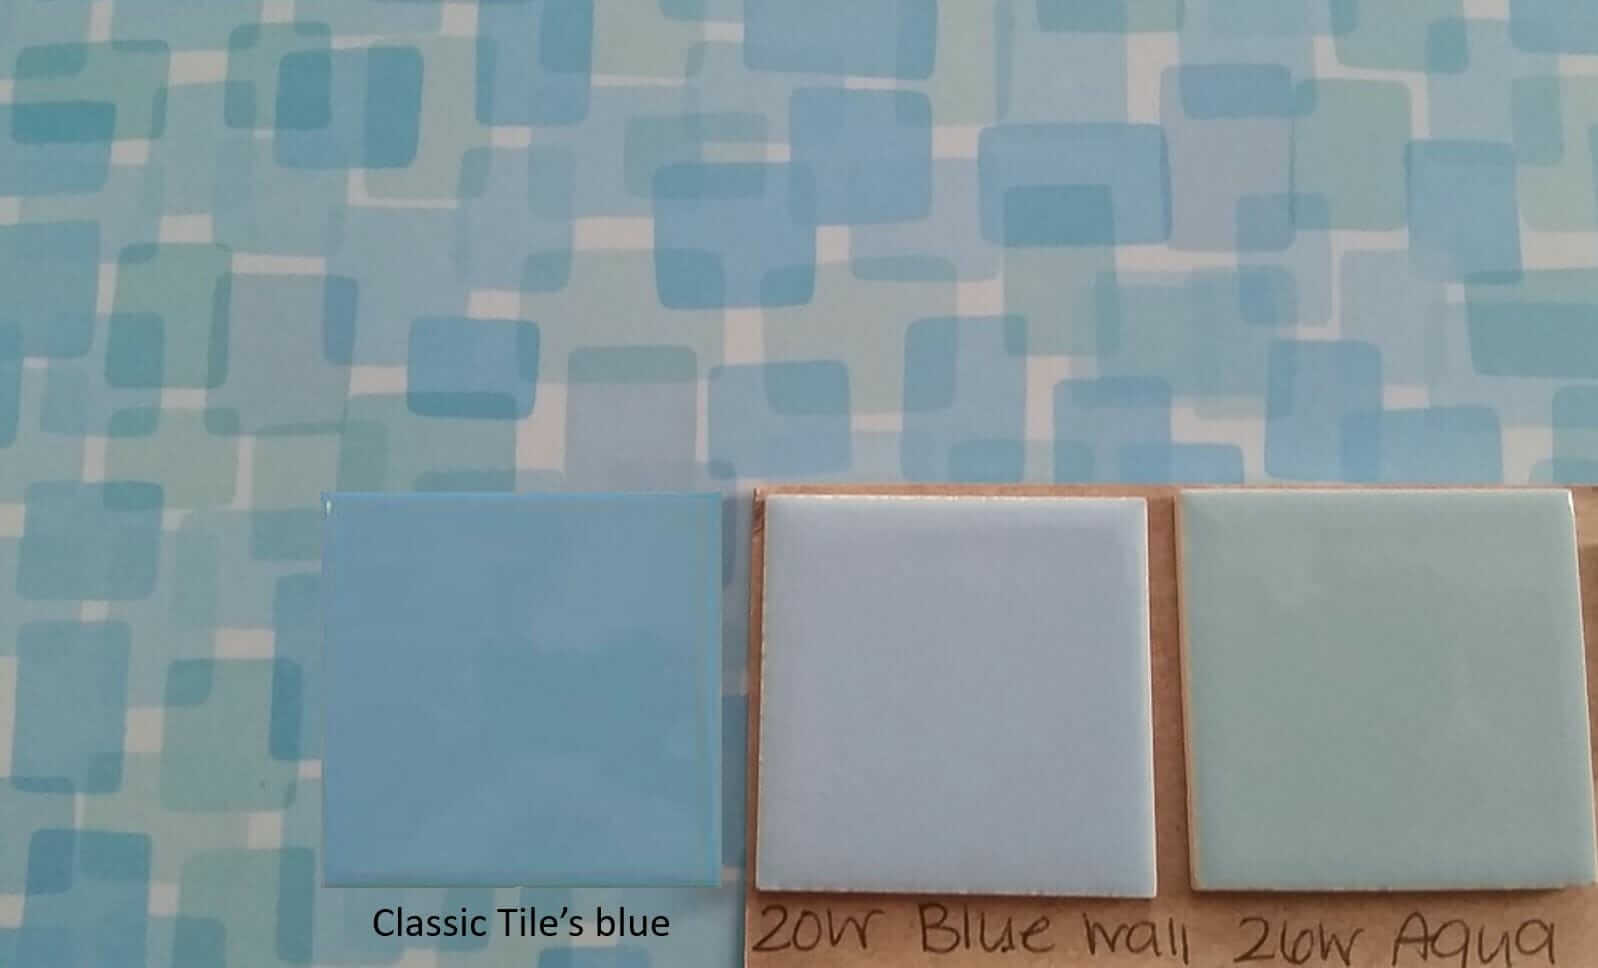 Formica blue Nassau laminate - which color tile - blue or aqua - to ...